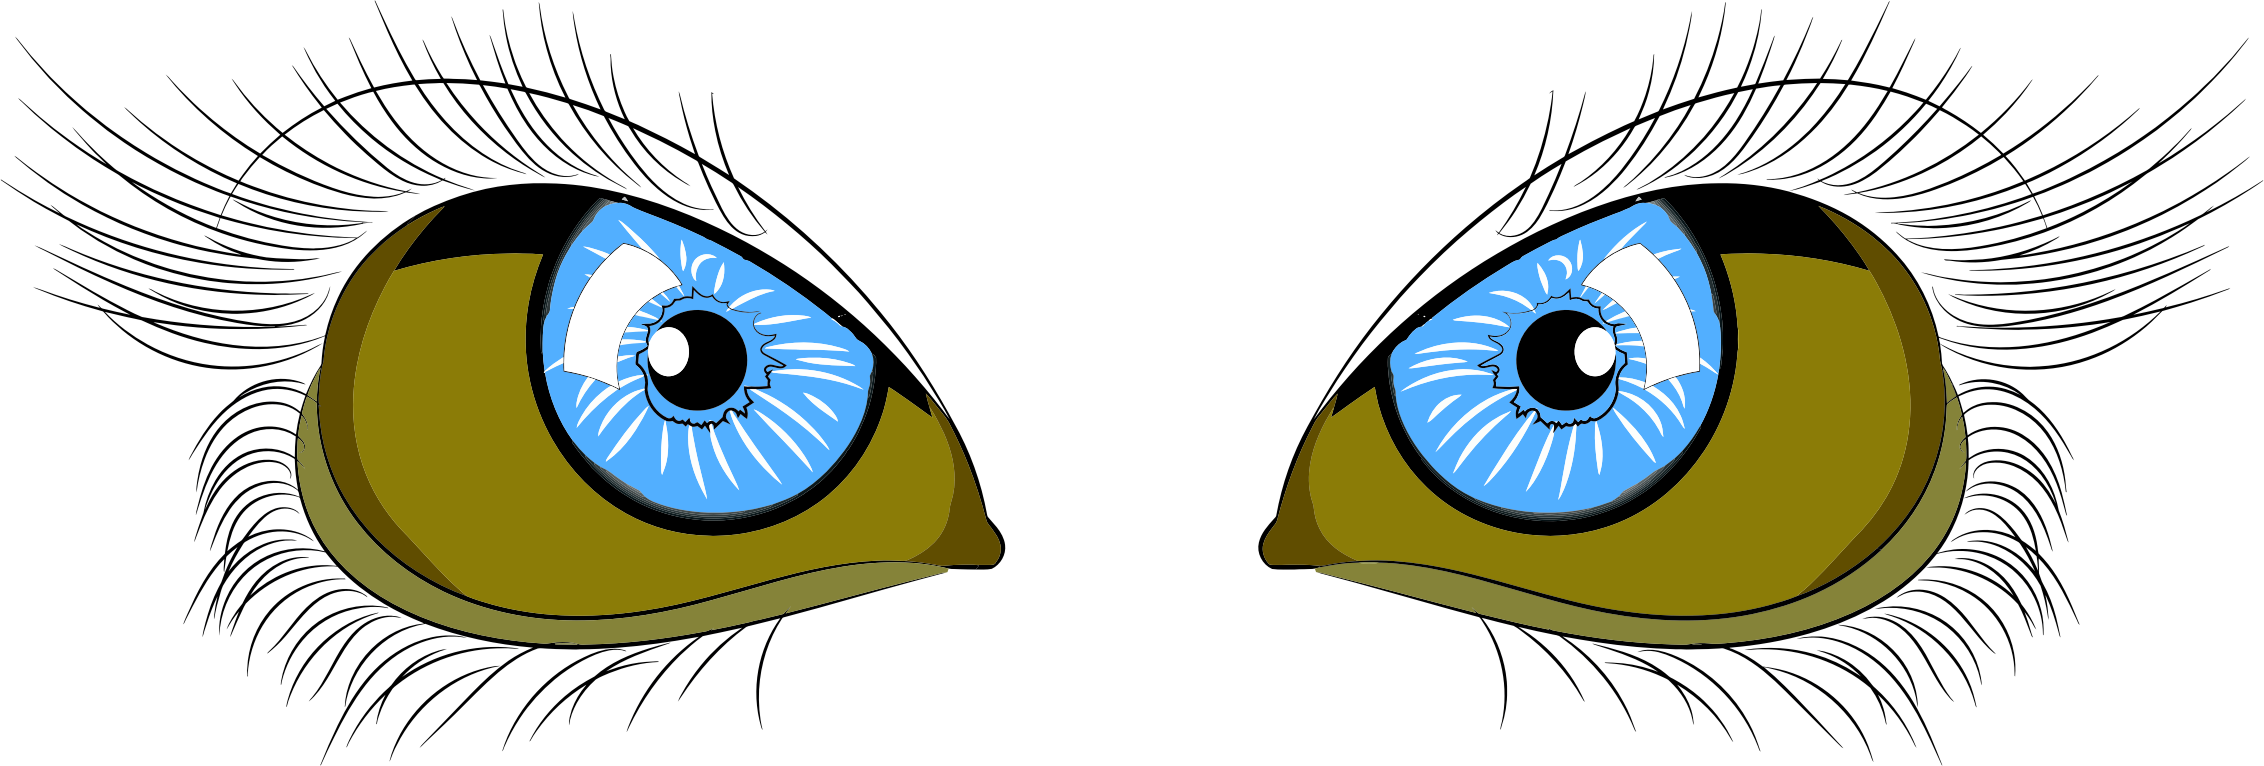 Eyebrow clipart blue eye. Eyes big image png